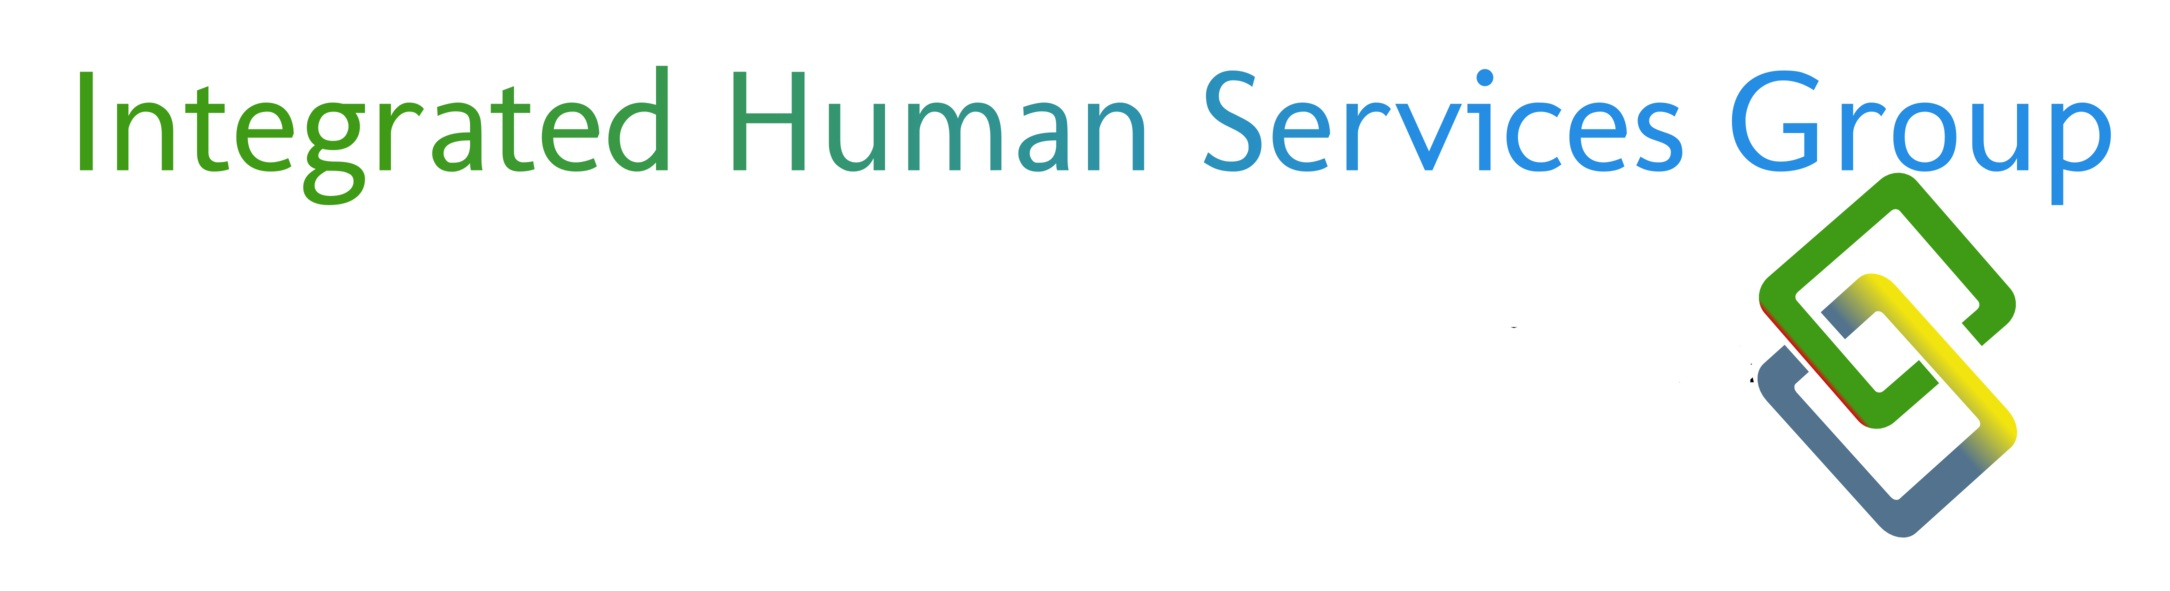 Integrated Human Services